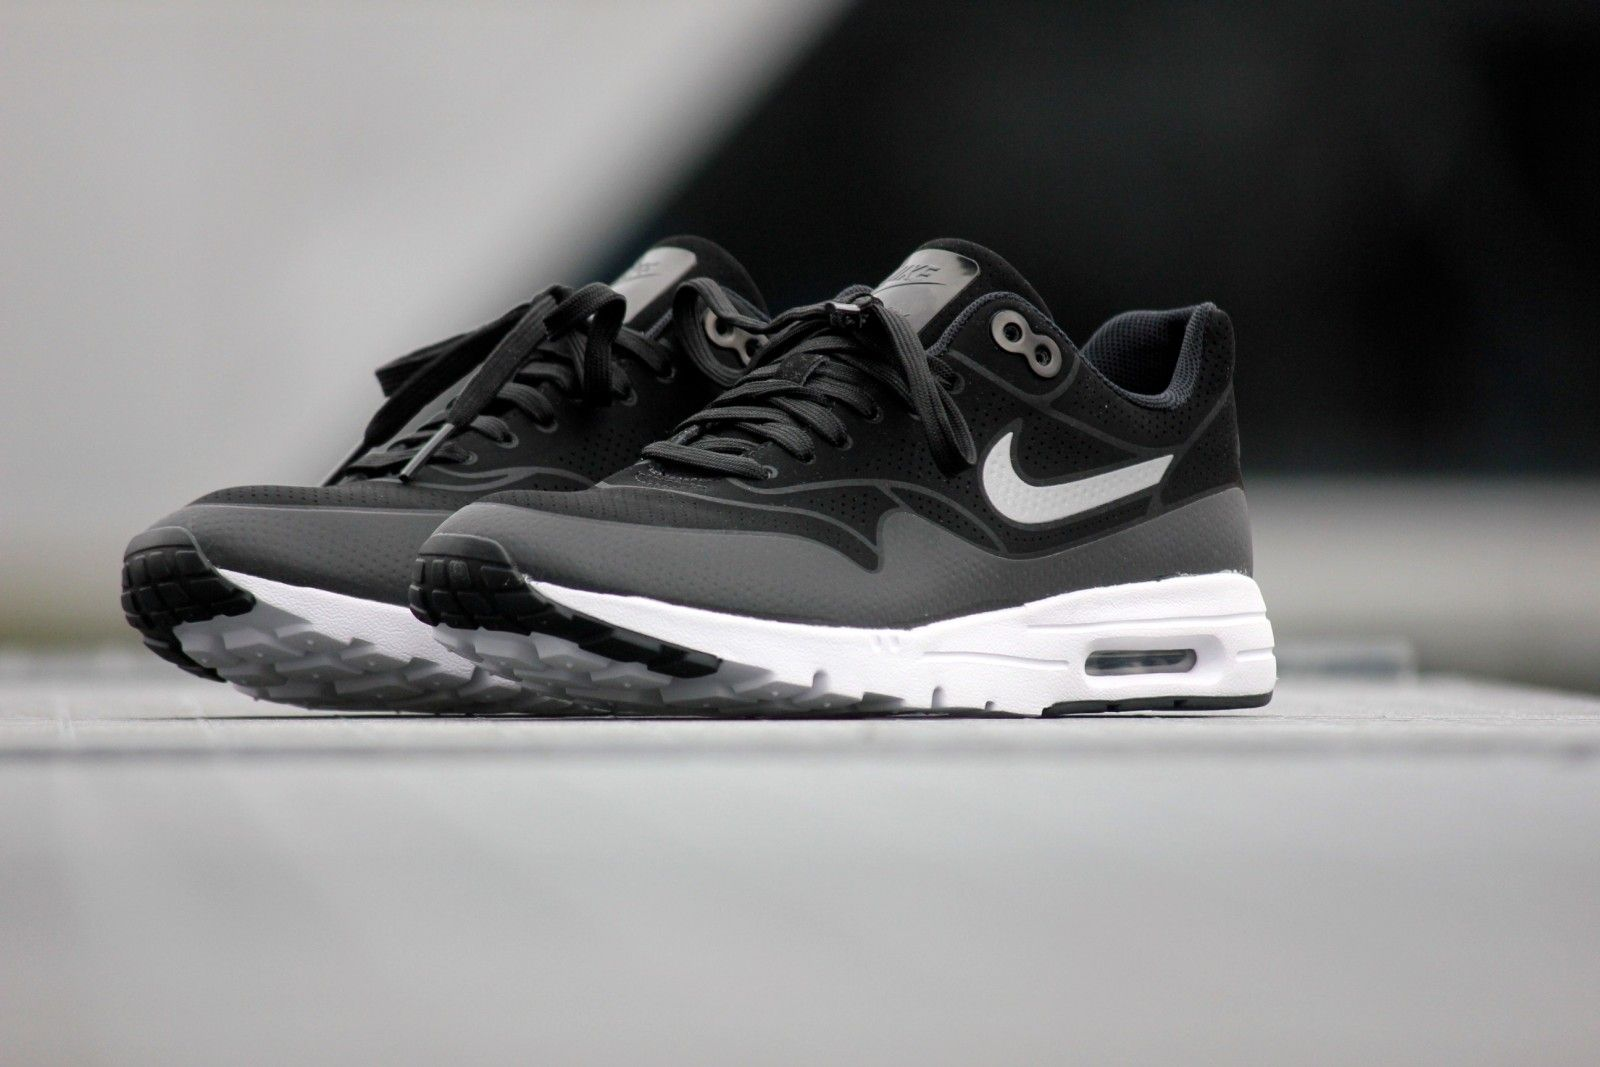 Nike Womens Shoes - Nike Air Max 1 Jacquard Black/Metallic Silver/White D1y7454